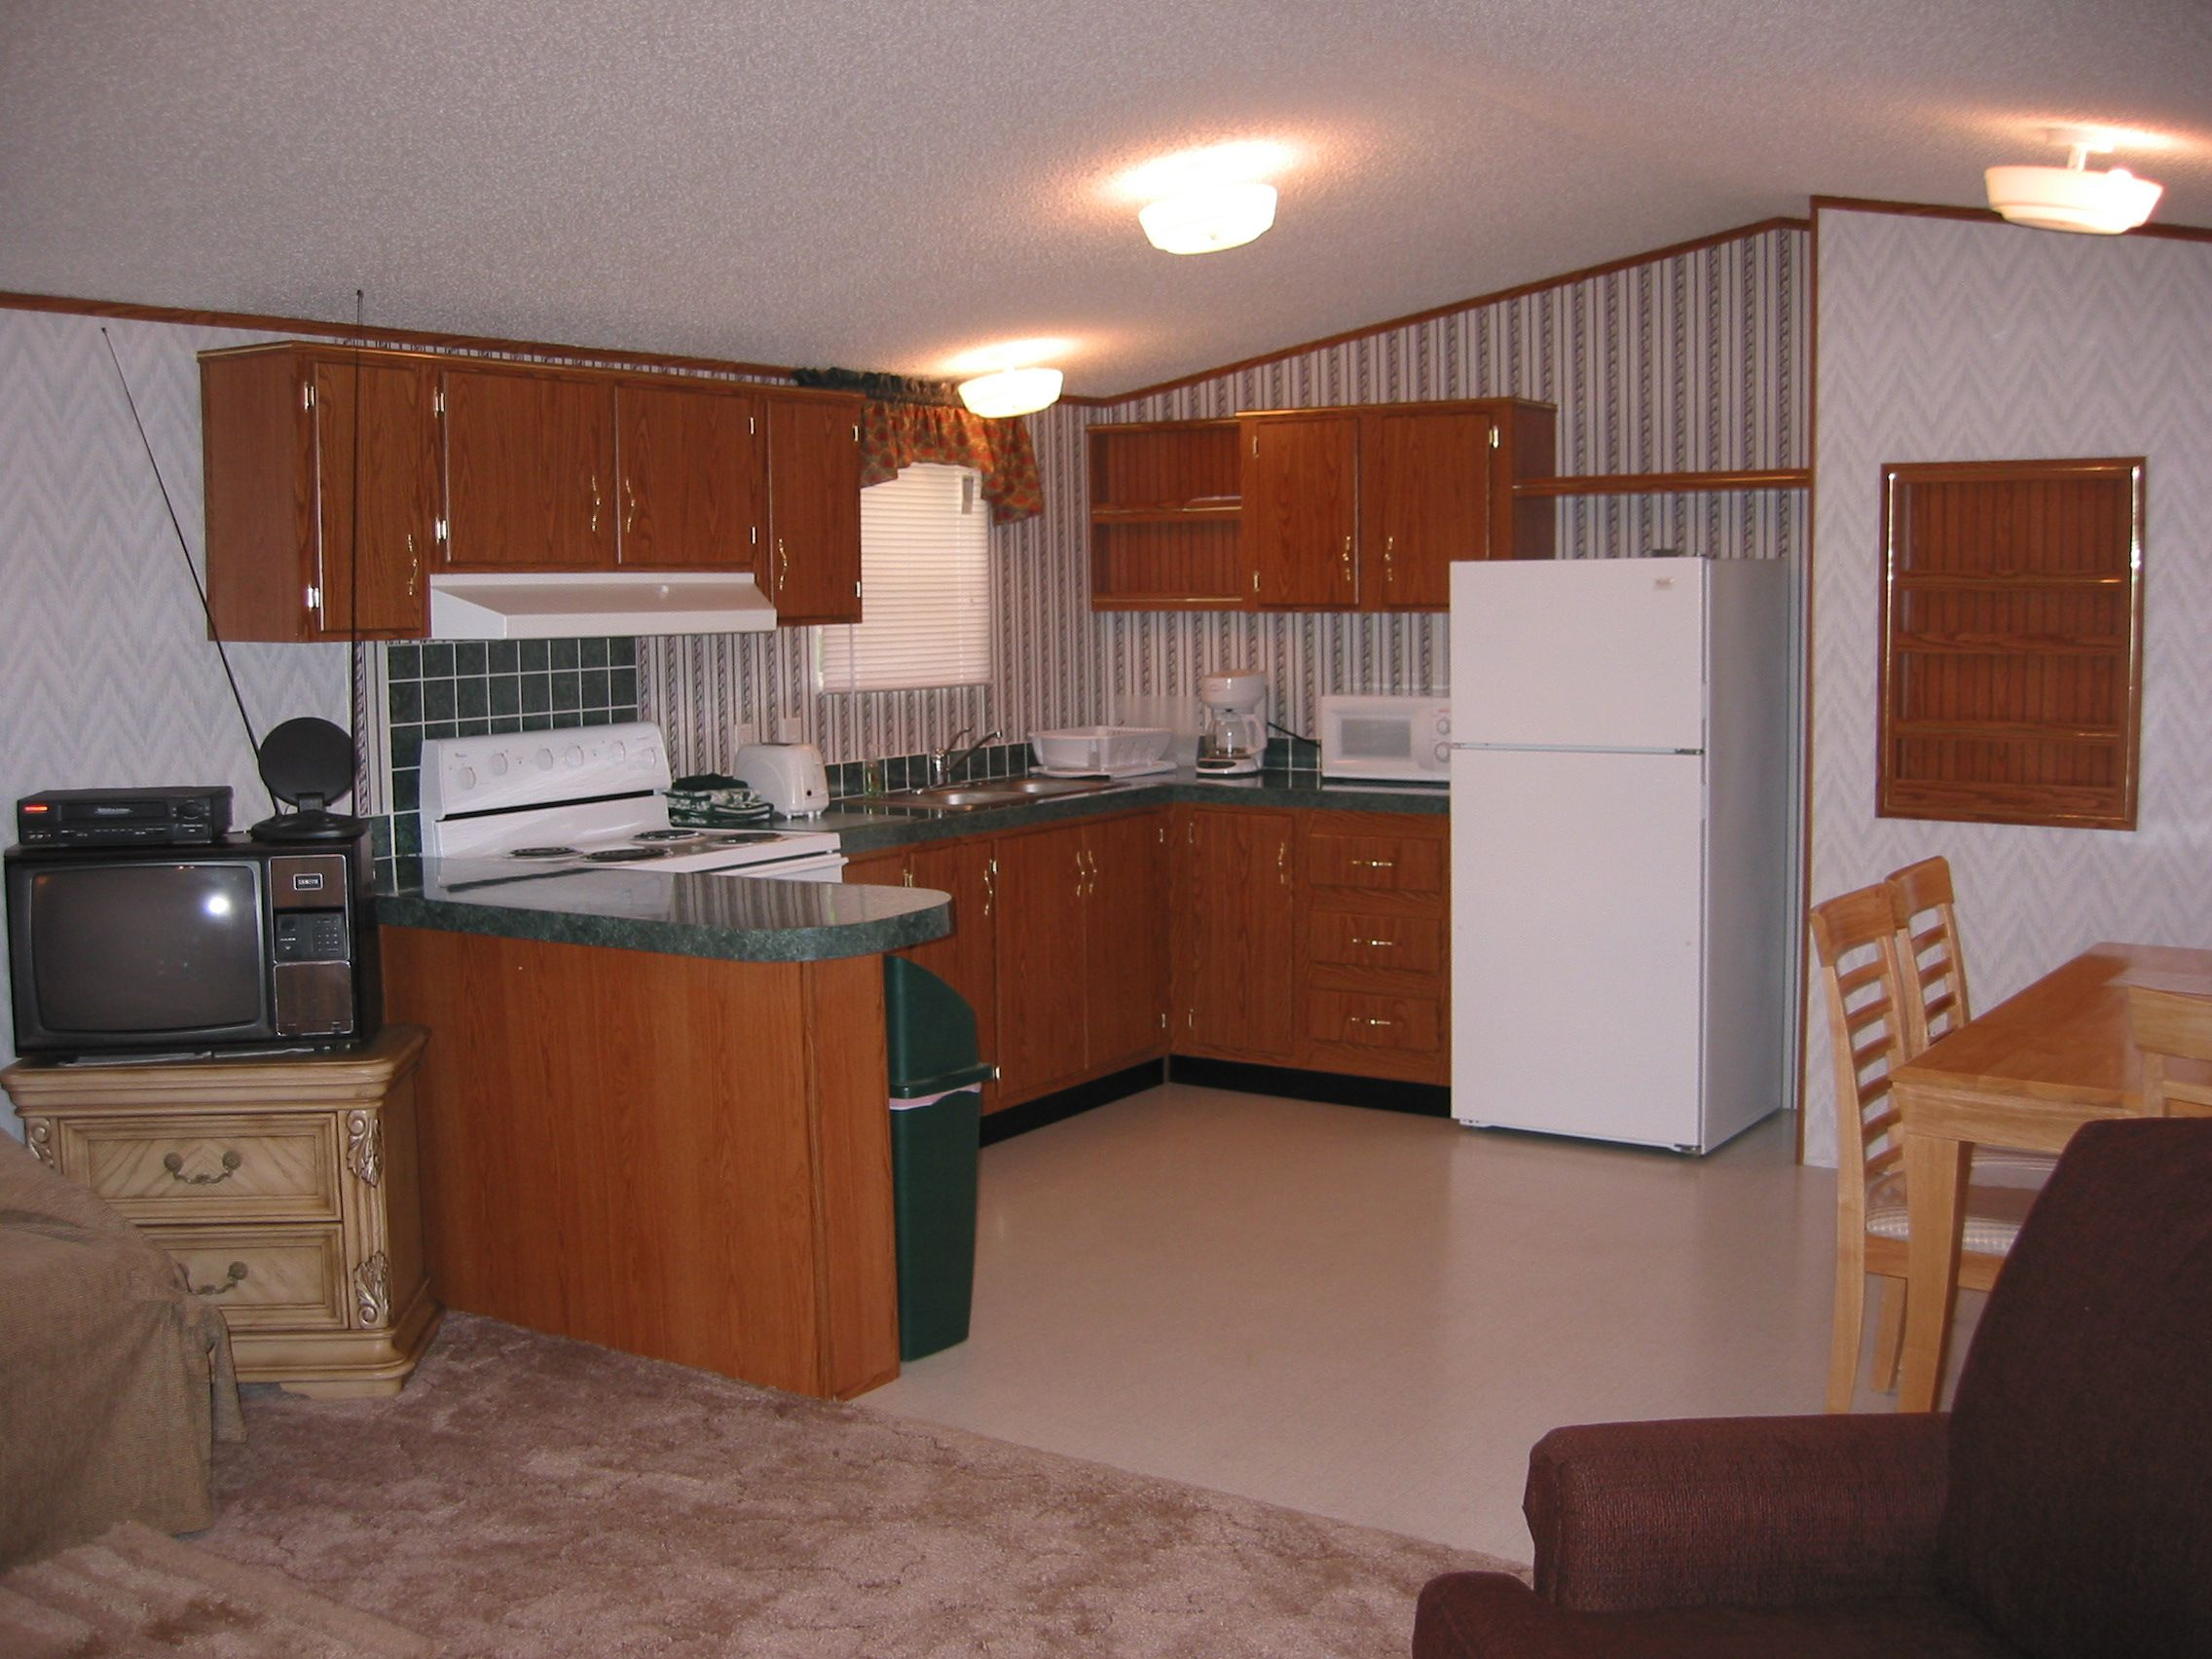 Mobile Homes Kitchen Designs Mobile Home Remodeling Ideas  Mobile Home Not Available .